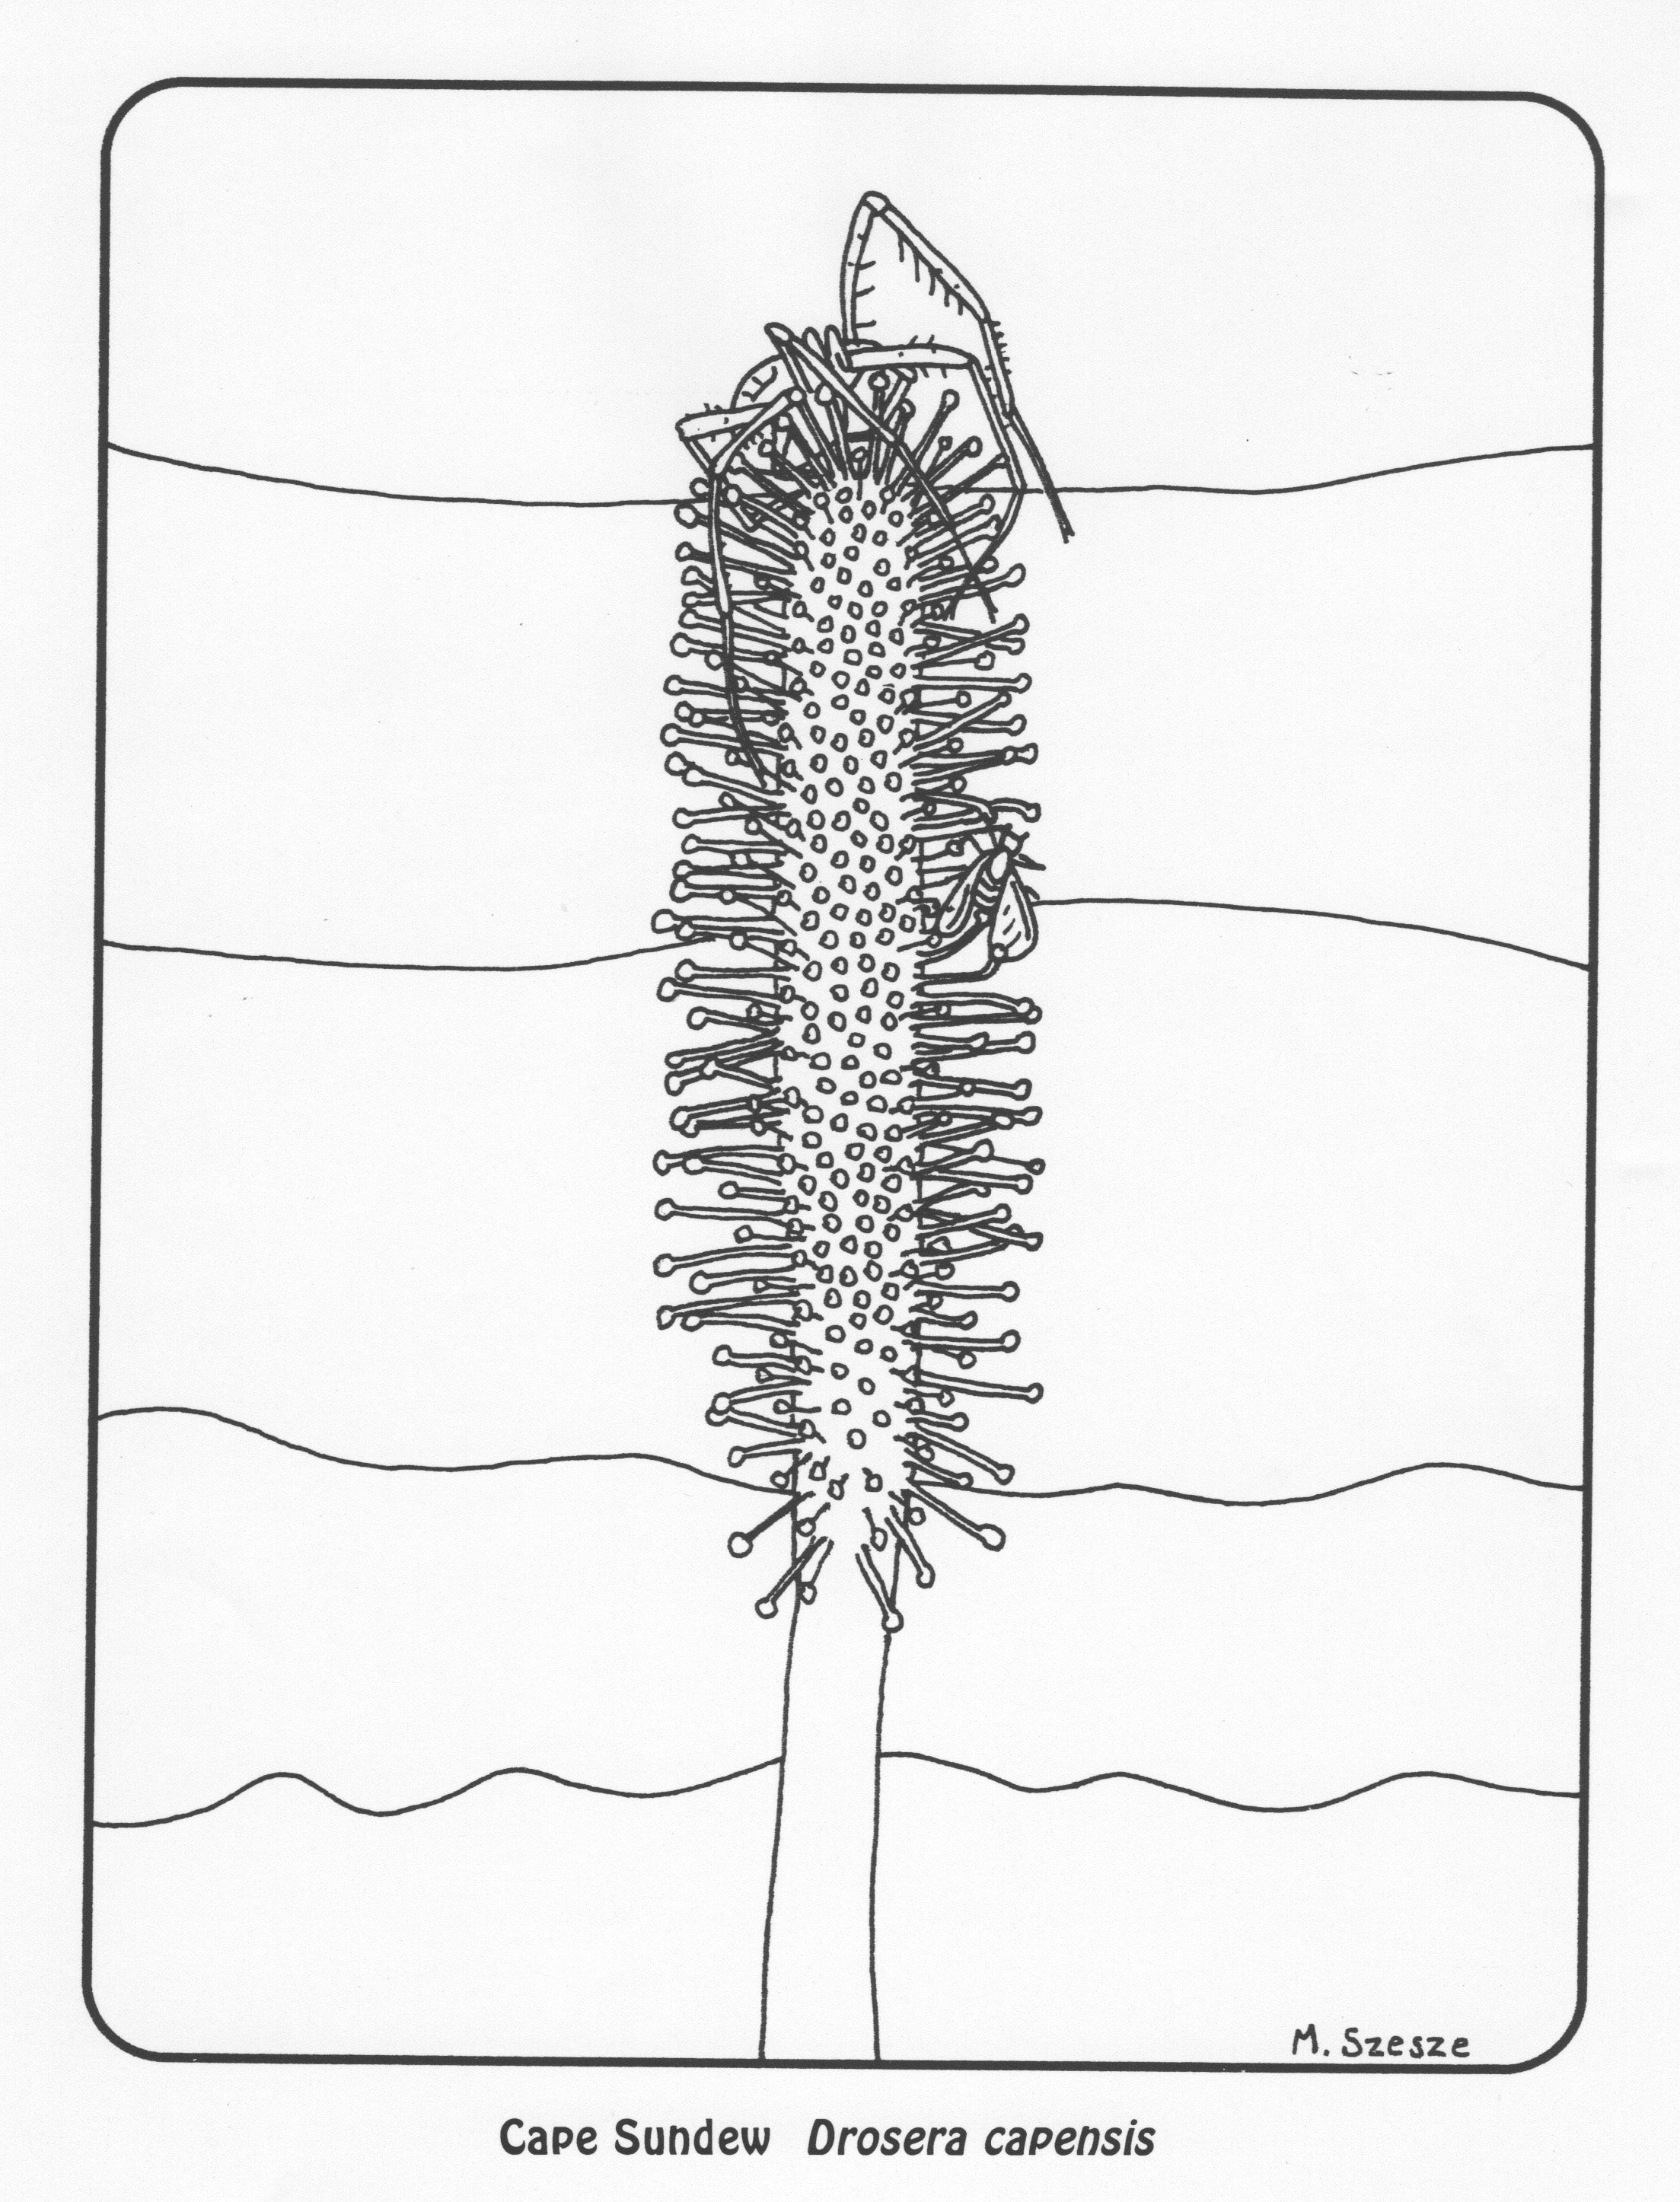 carnivorous plants coloring pages | Free Carnivorous Plant Coloring Pages — Carnivorous Plant ...